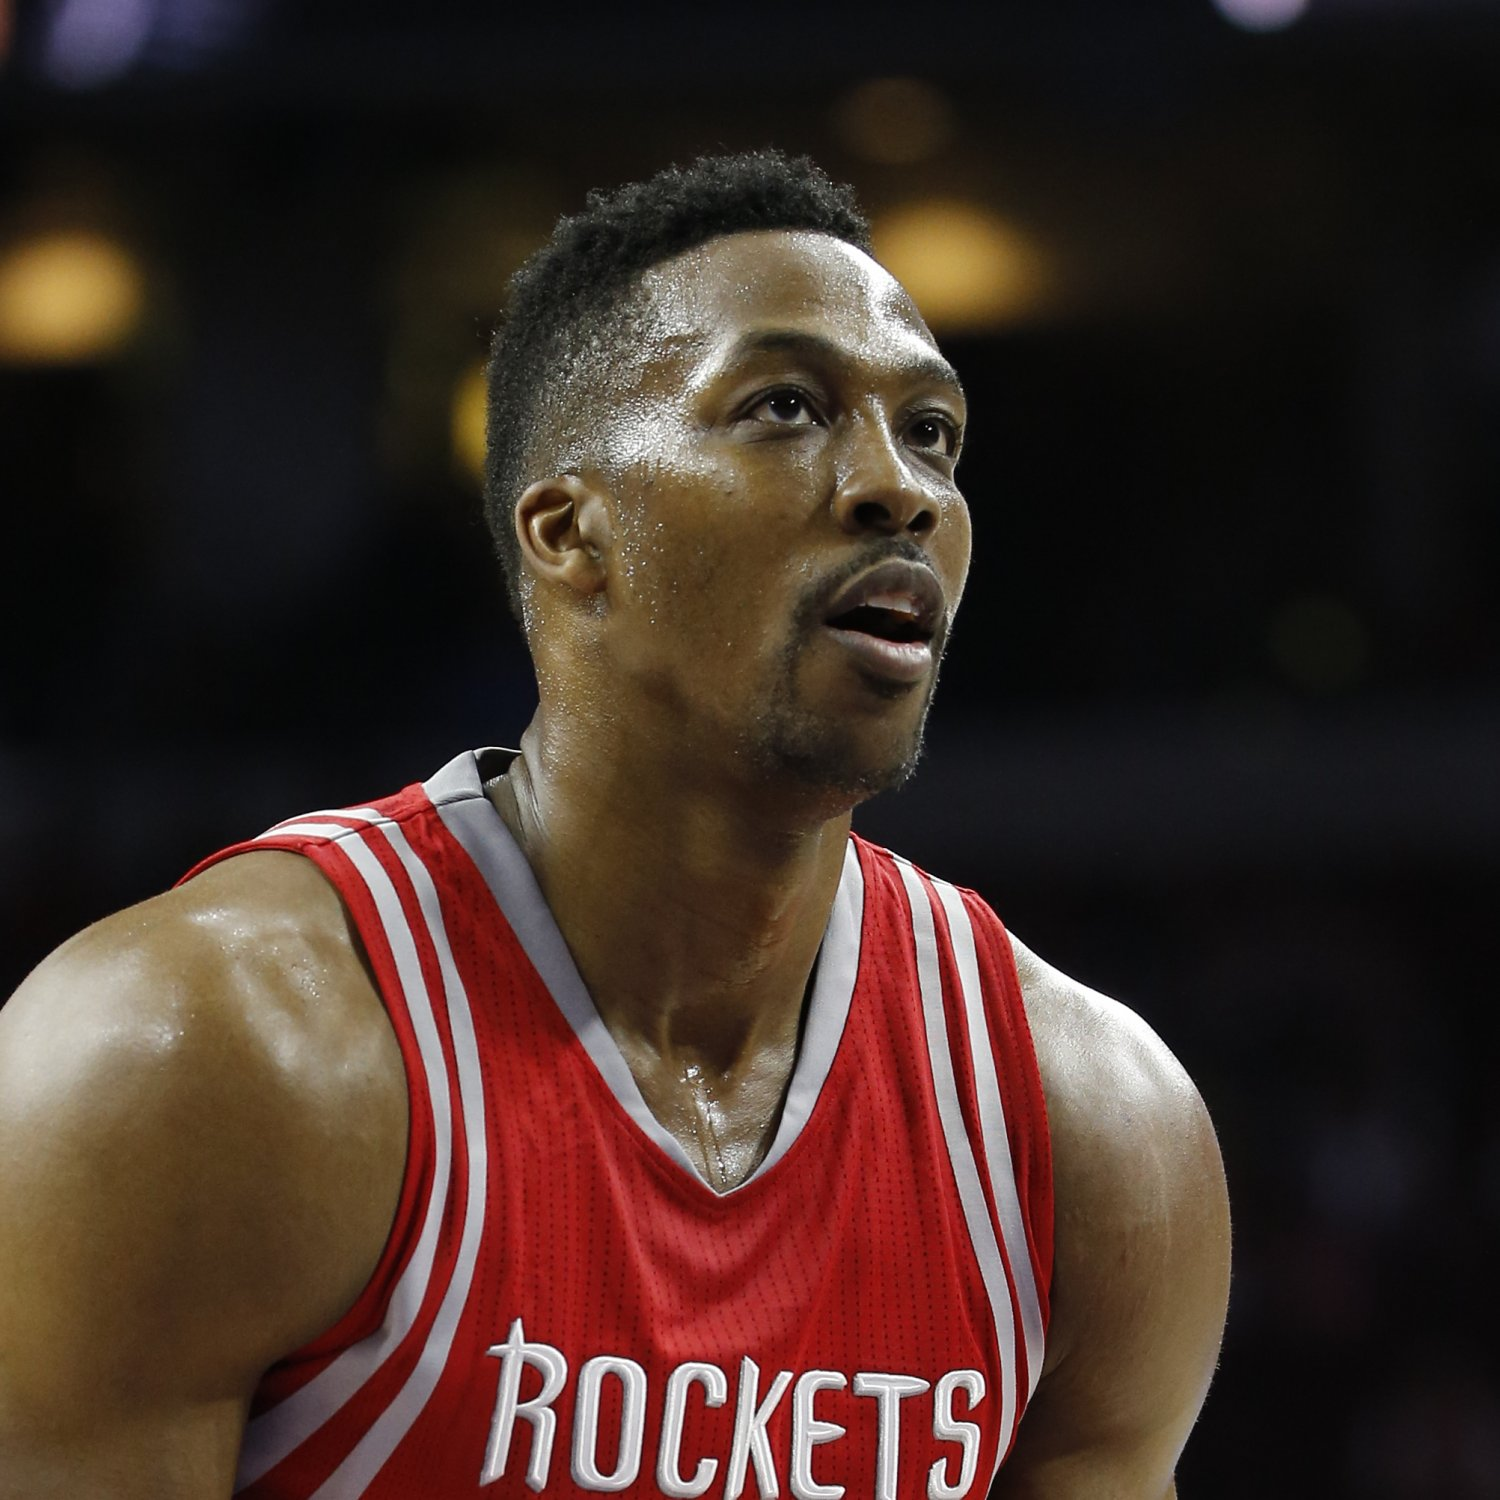 Houston Rockets Where To Watch The Upcoming Match Espn: Best Potential Fits For Dwight Howard If He Leaves The